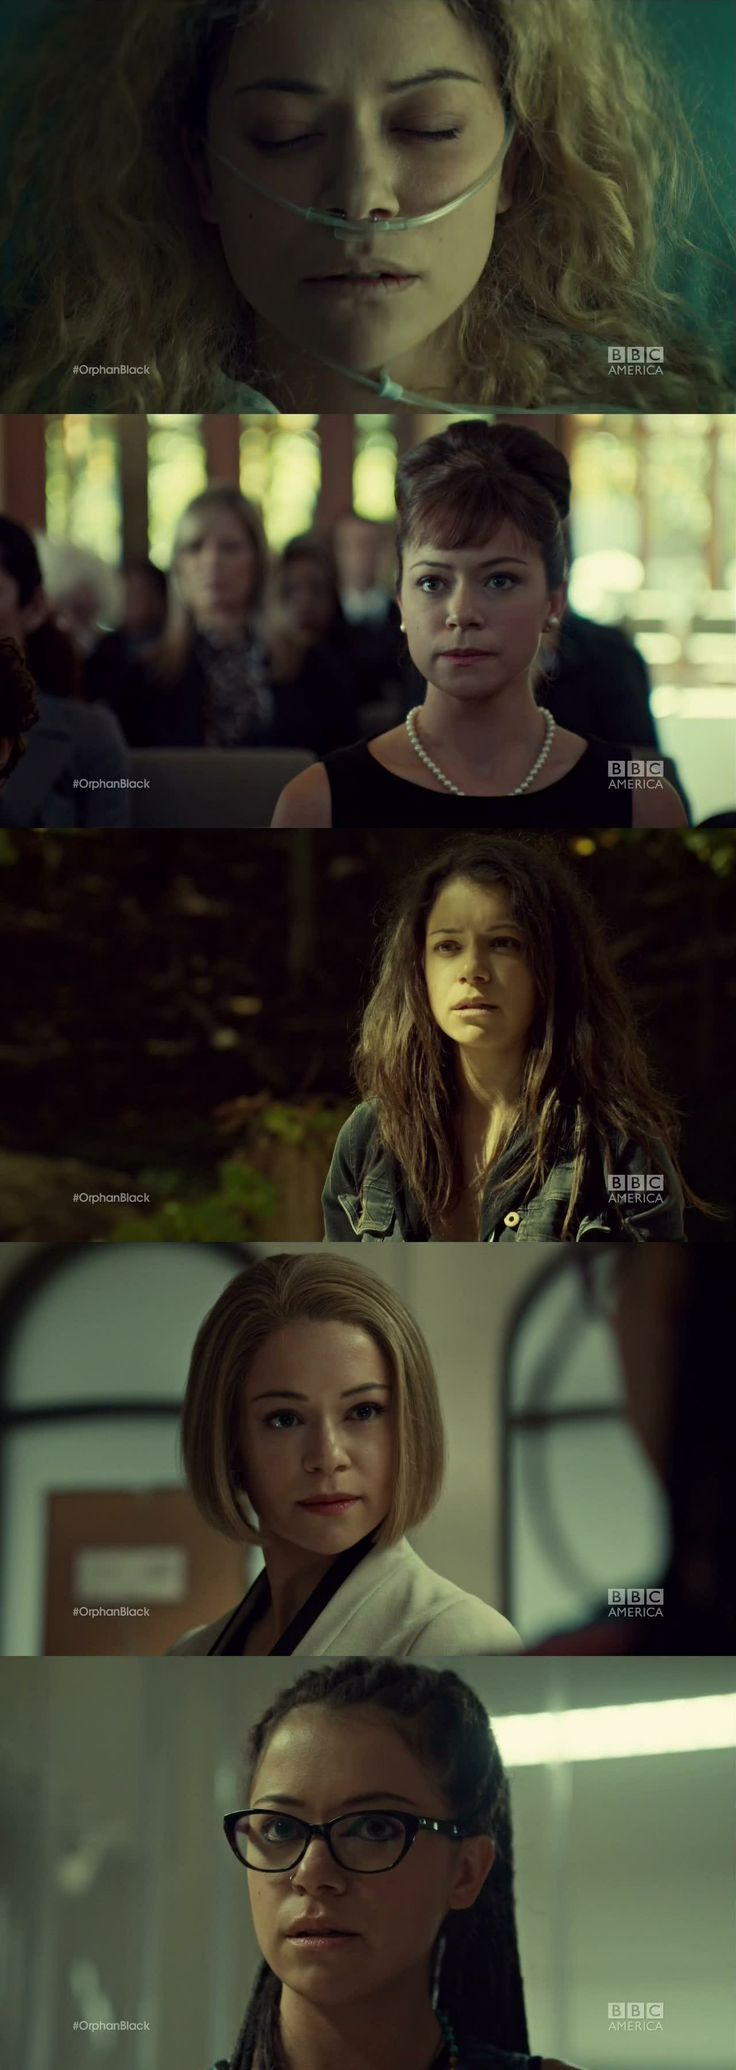 Same actress, completely different characters. Orphan Black. She deserves every award there is for this show! Amazing